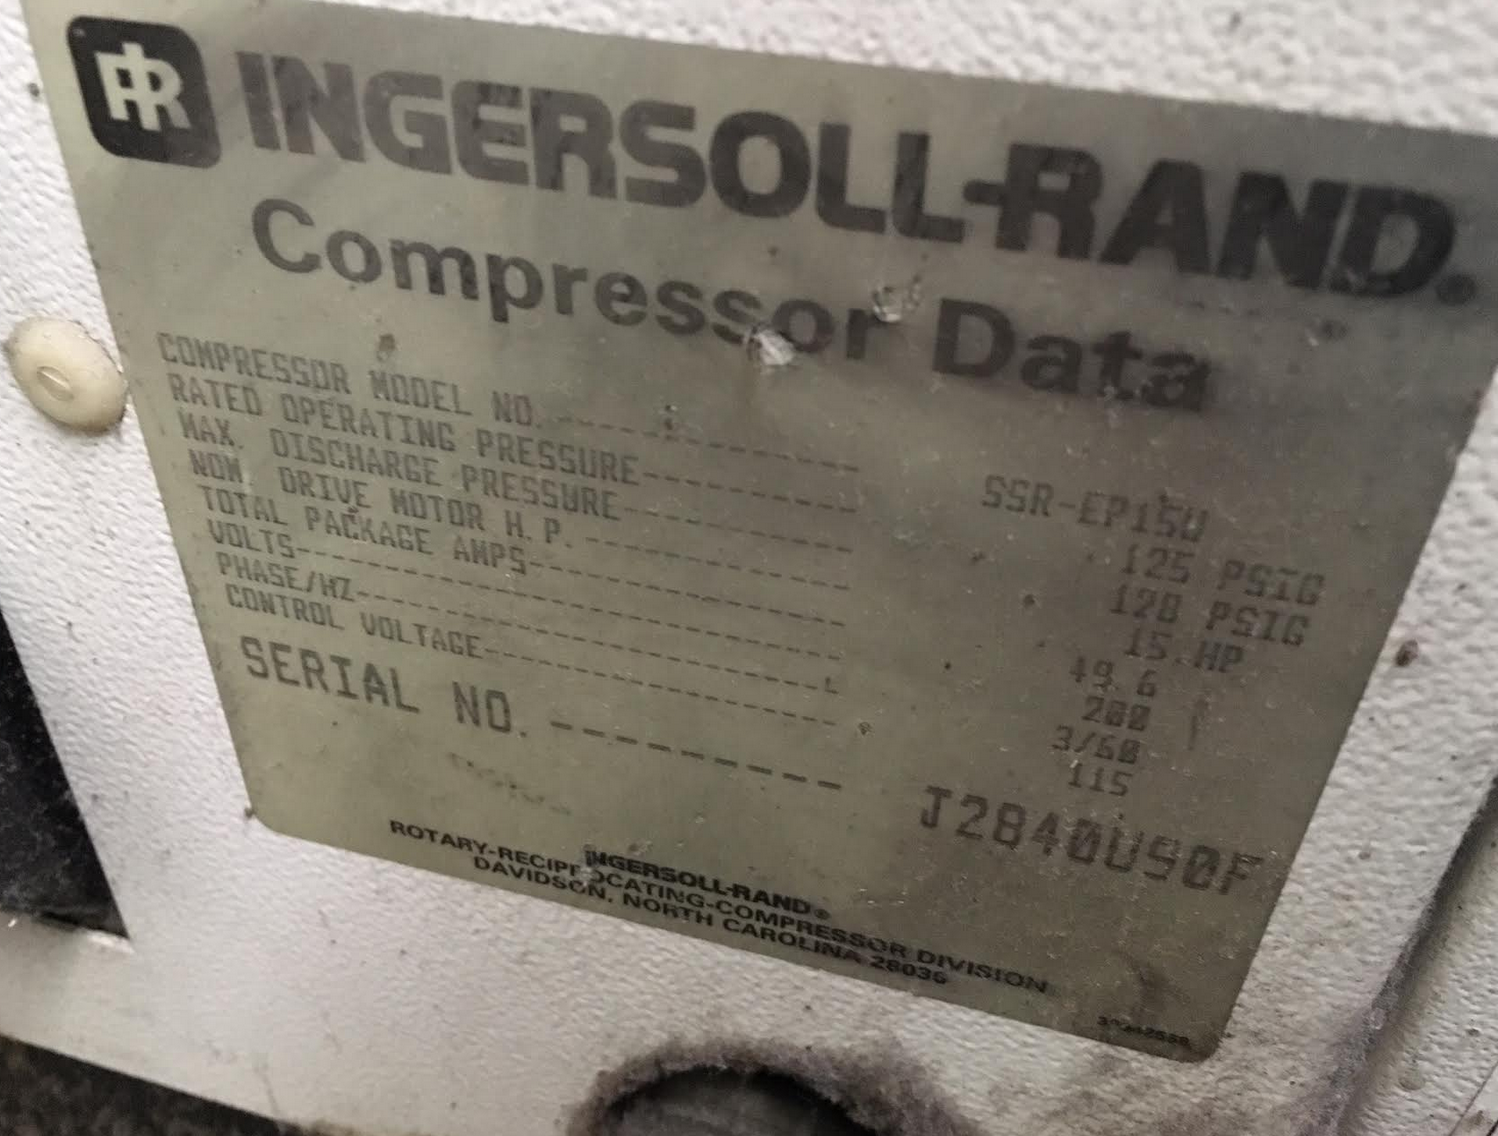 Ingersoll Rand Rotary Compressor